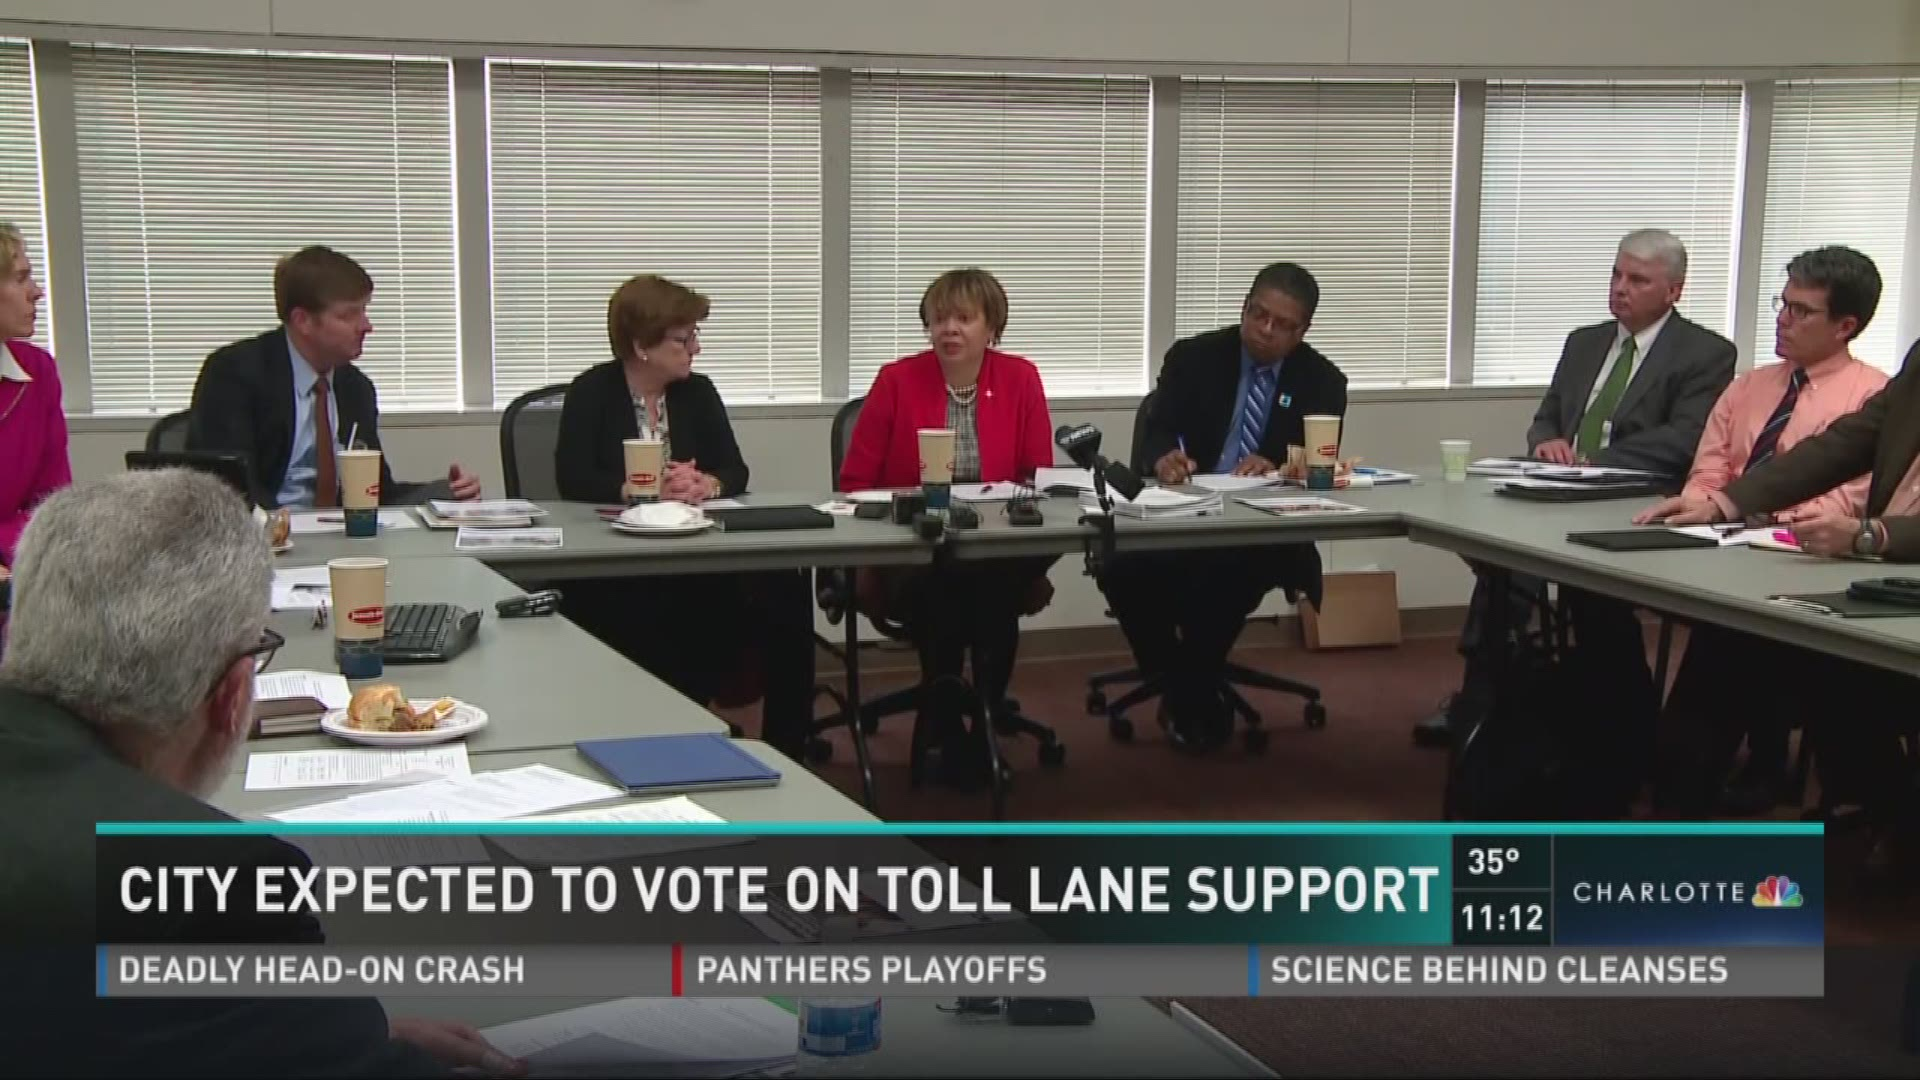 City expected to vote on toll lane support